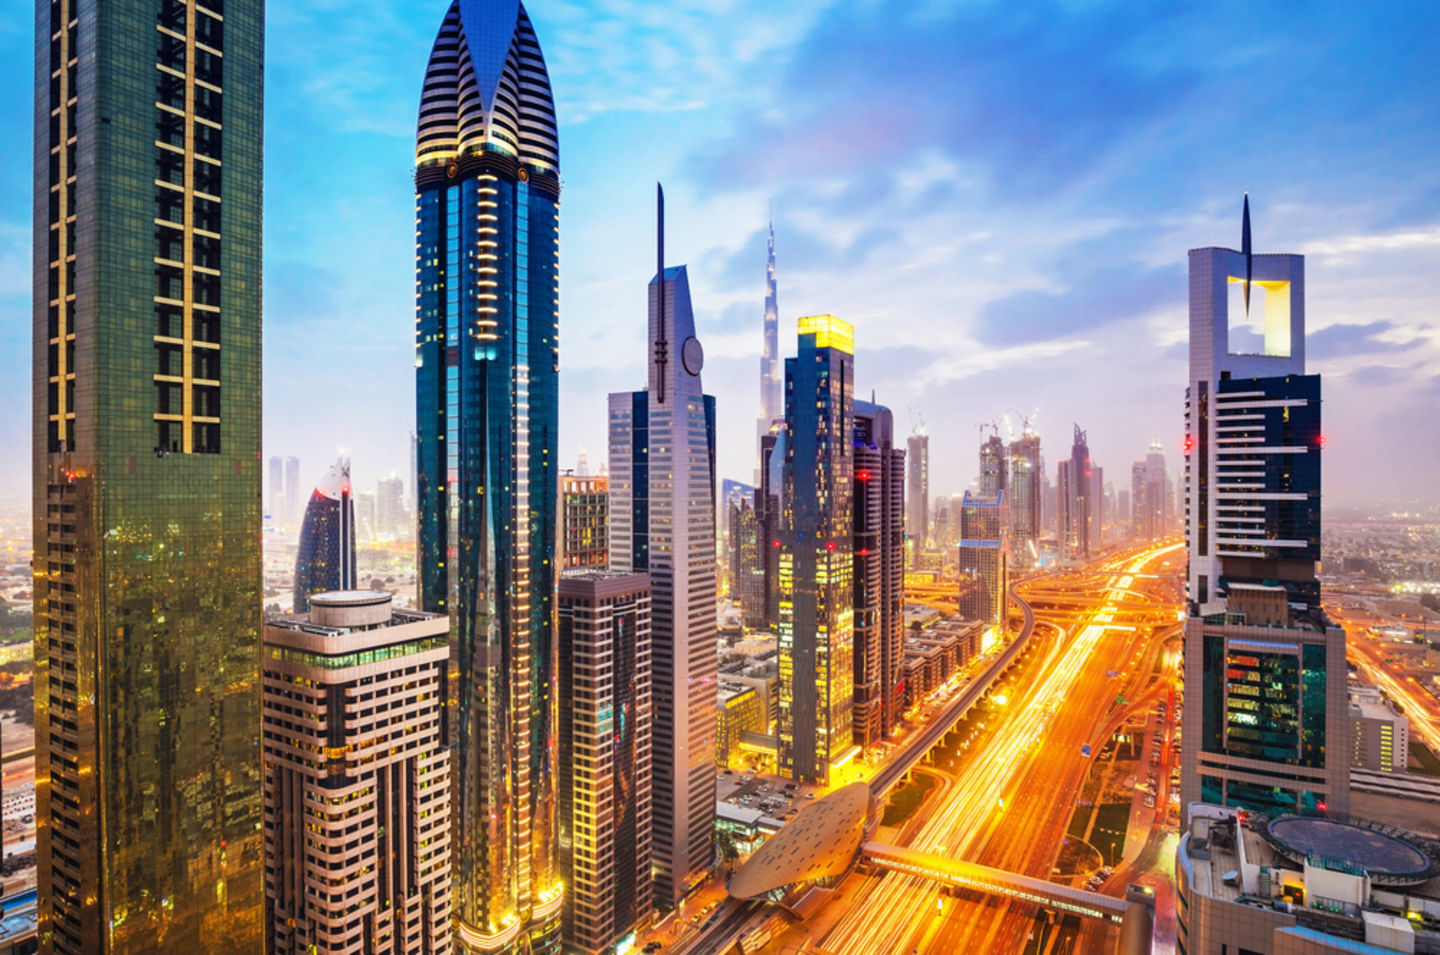 HiDubai-business-3g-real-estate-housing-real-estate-real-estate-agencies-business-bay-dubai-2